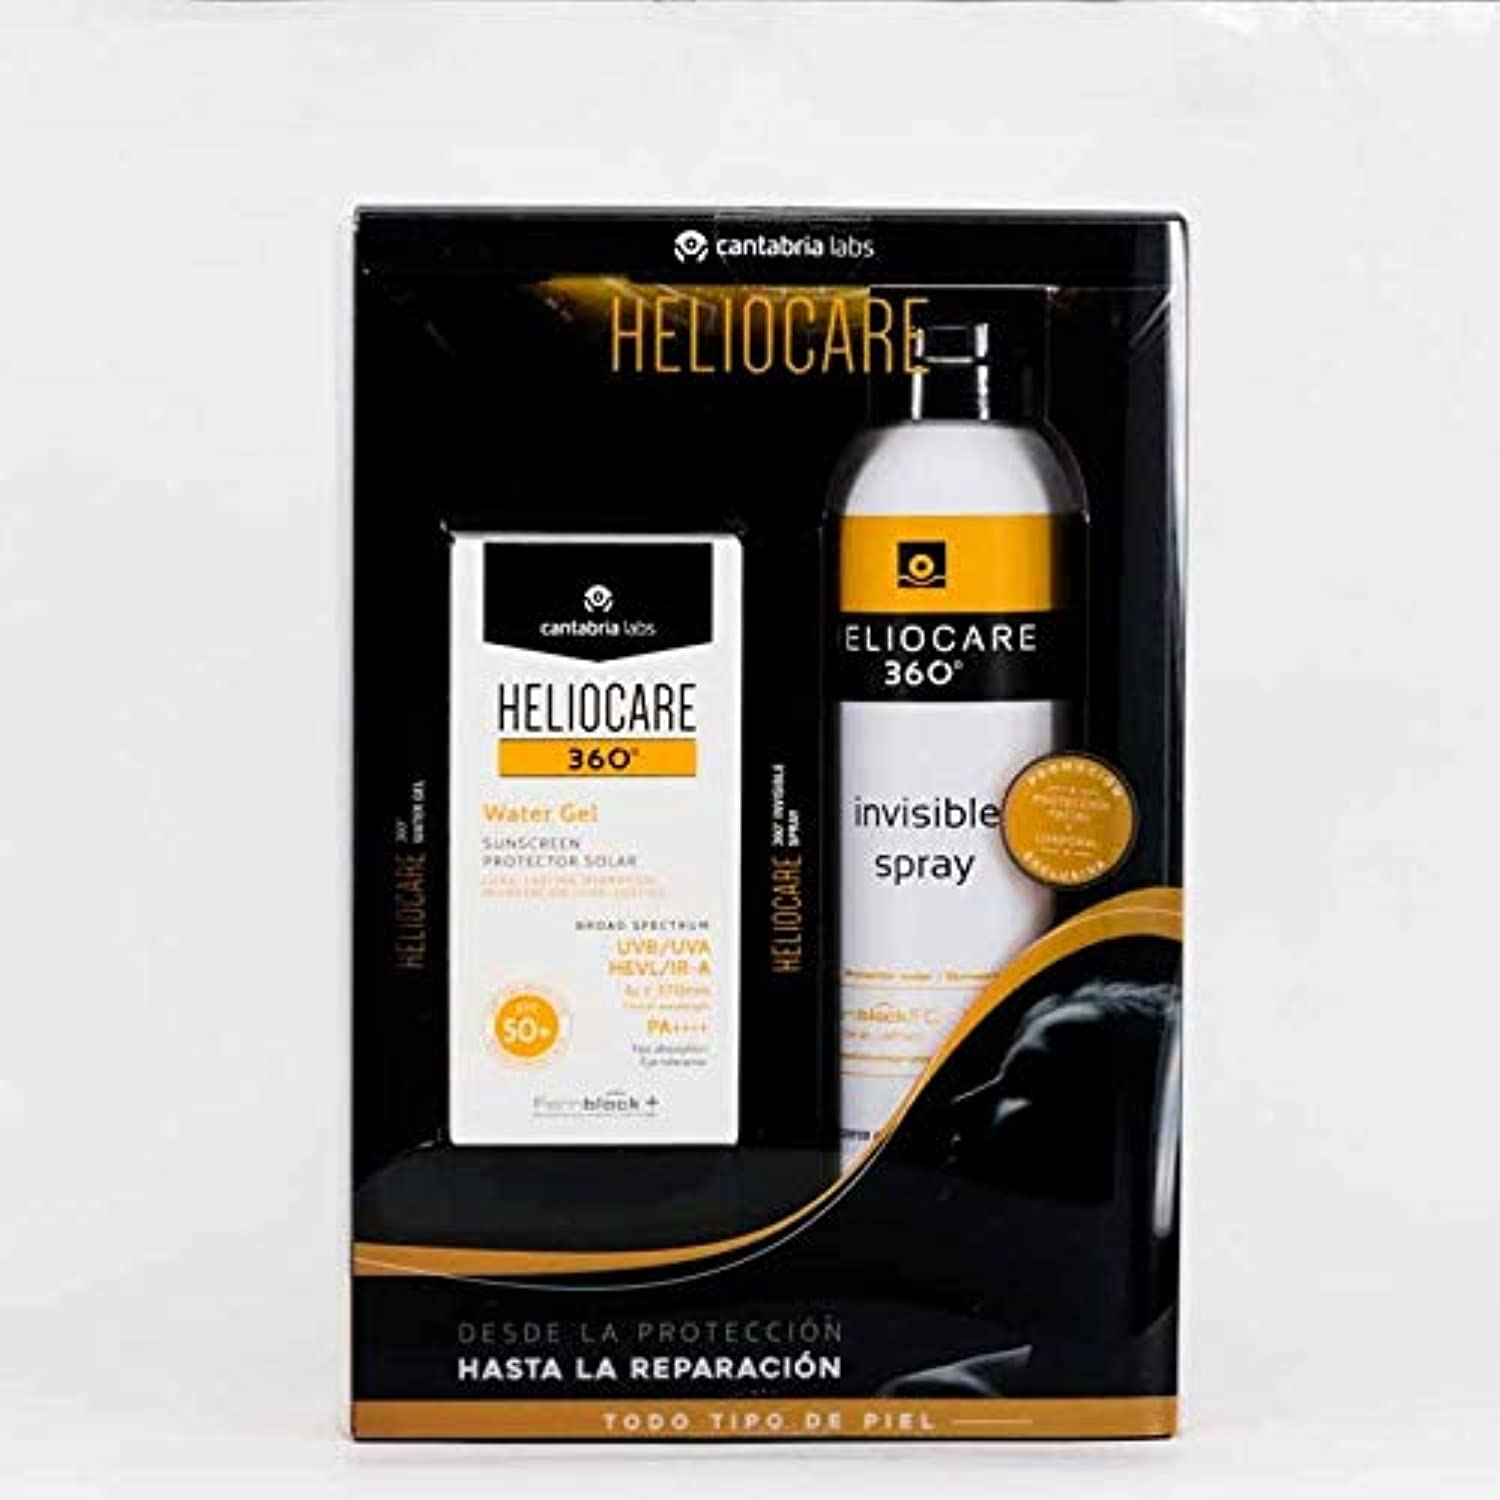 HELIOCARE PACK 360 WATER GEL SPF50+ 50 ML + SPRAY INVISIBLE SPF50+ 200 ML